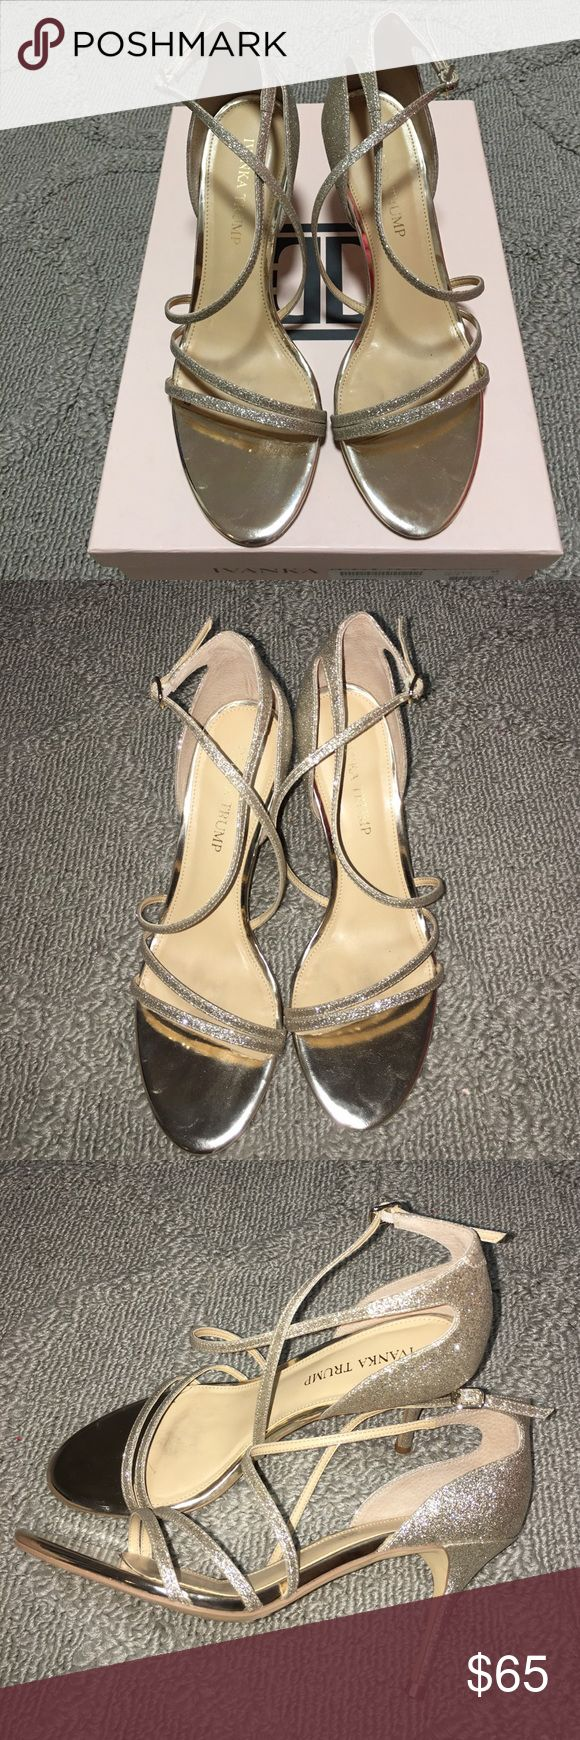 Ivanka Trump Garis Sandal Ivanka Trump Garis Sandal in glitter gold color.  So cute and dainty.  Straps wrap around ankle.  Used only twice.  I'm normally a 7.5, but the 7 fit better on me. Ivanka Trump Shoes Heels